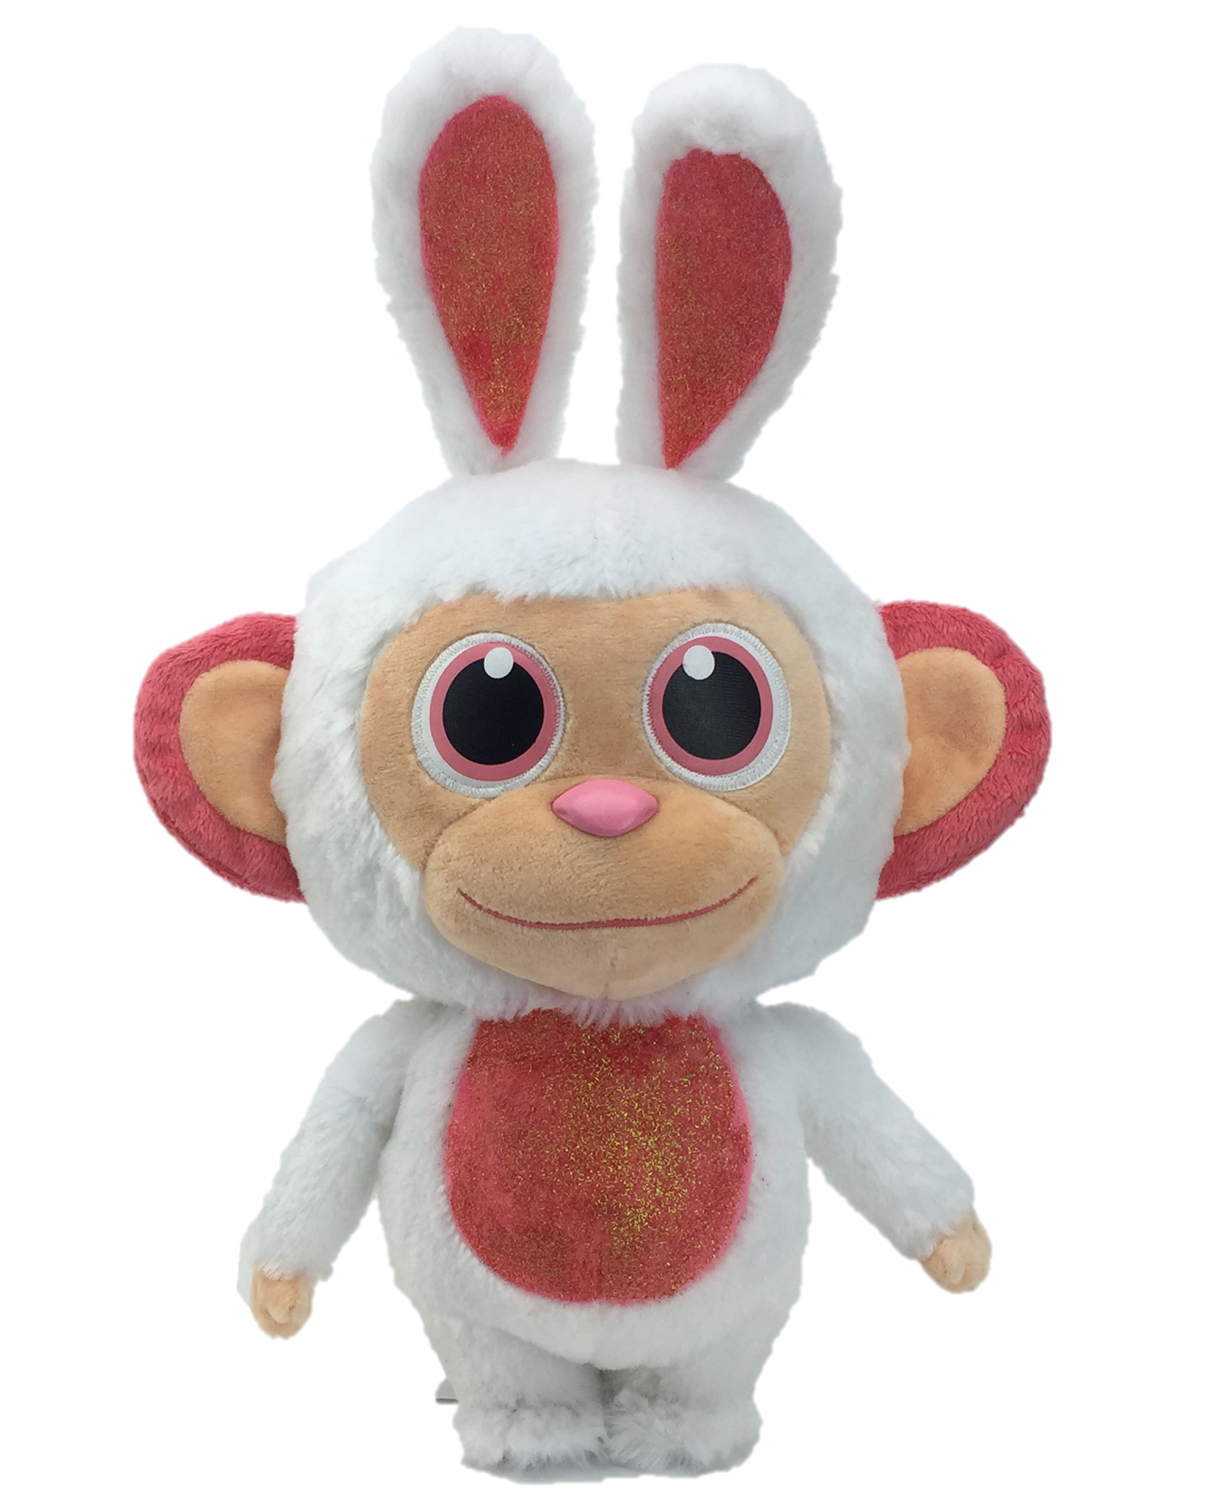 "Wonder Park Cotton Candy Scented 14"" Wonder Chimp Plush Bunny"